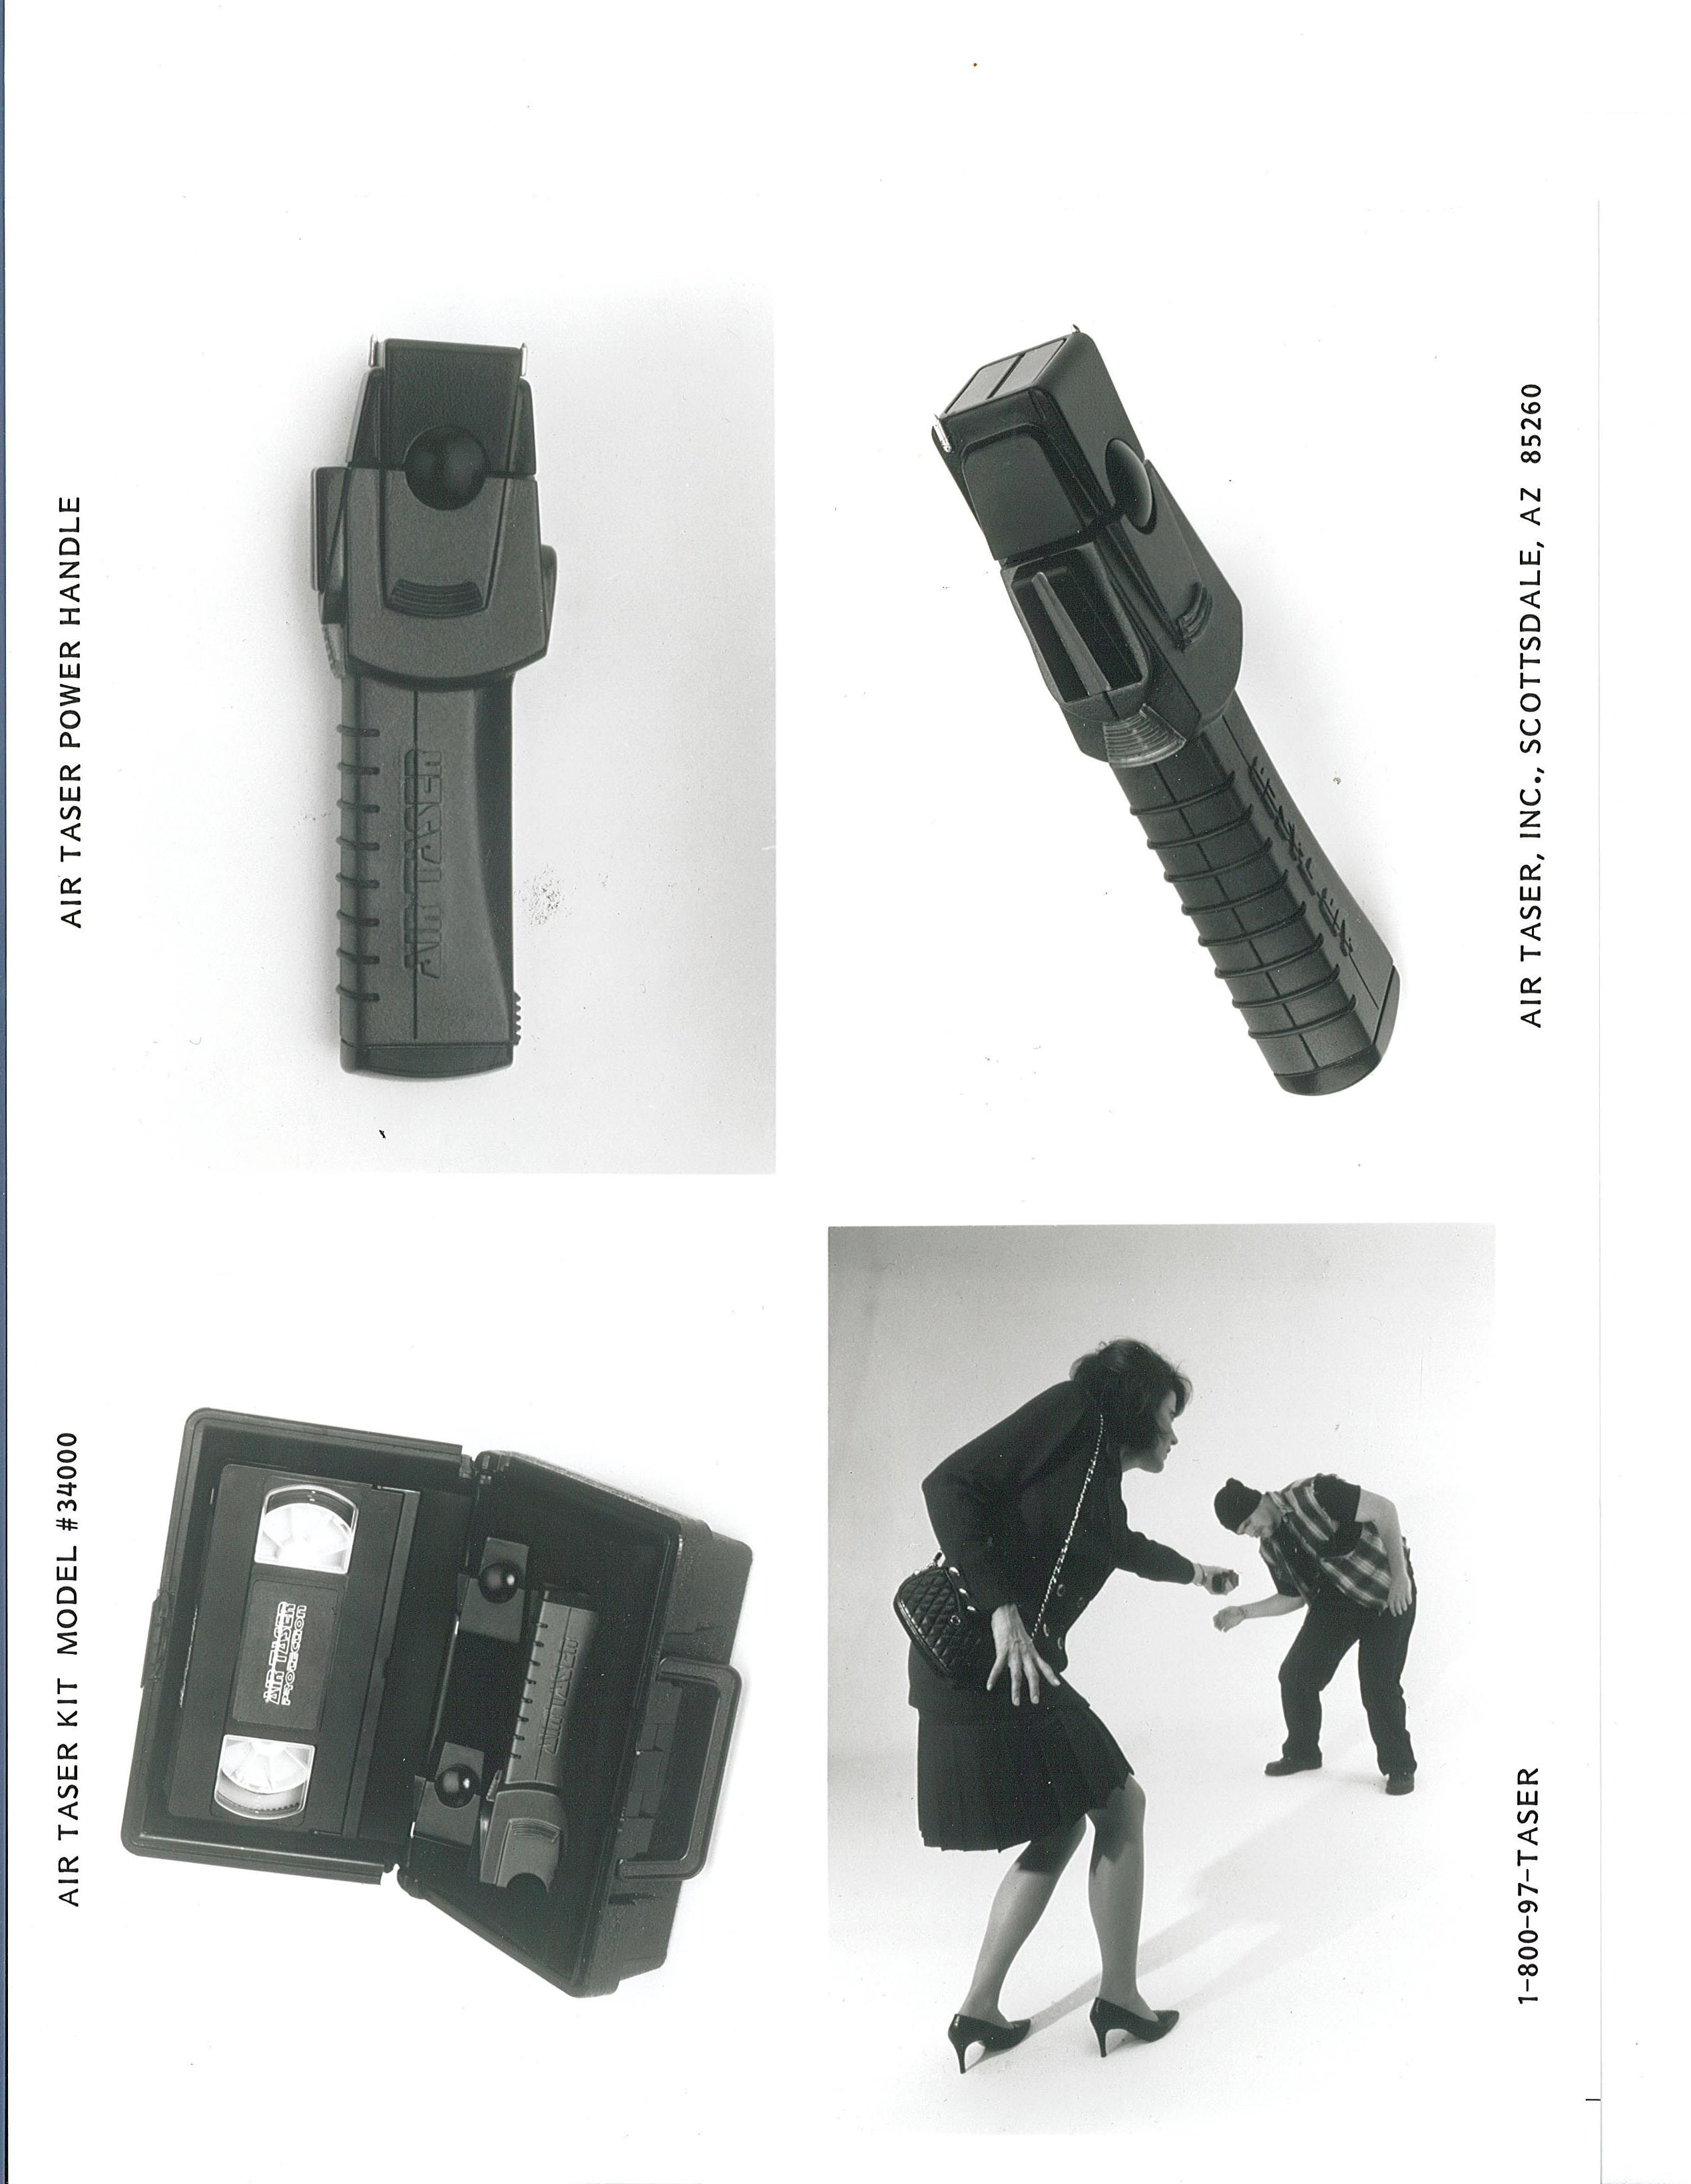 AIR TASER Model 34000 Conducted Electrical Weapon (CEW